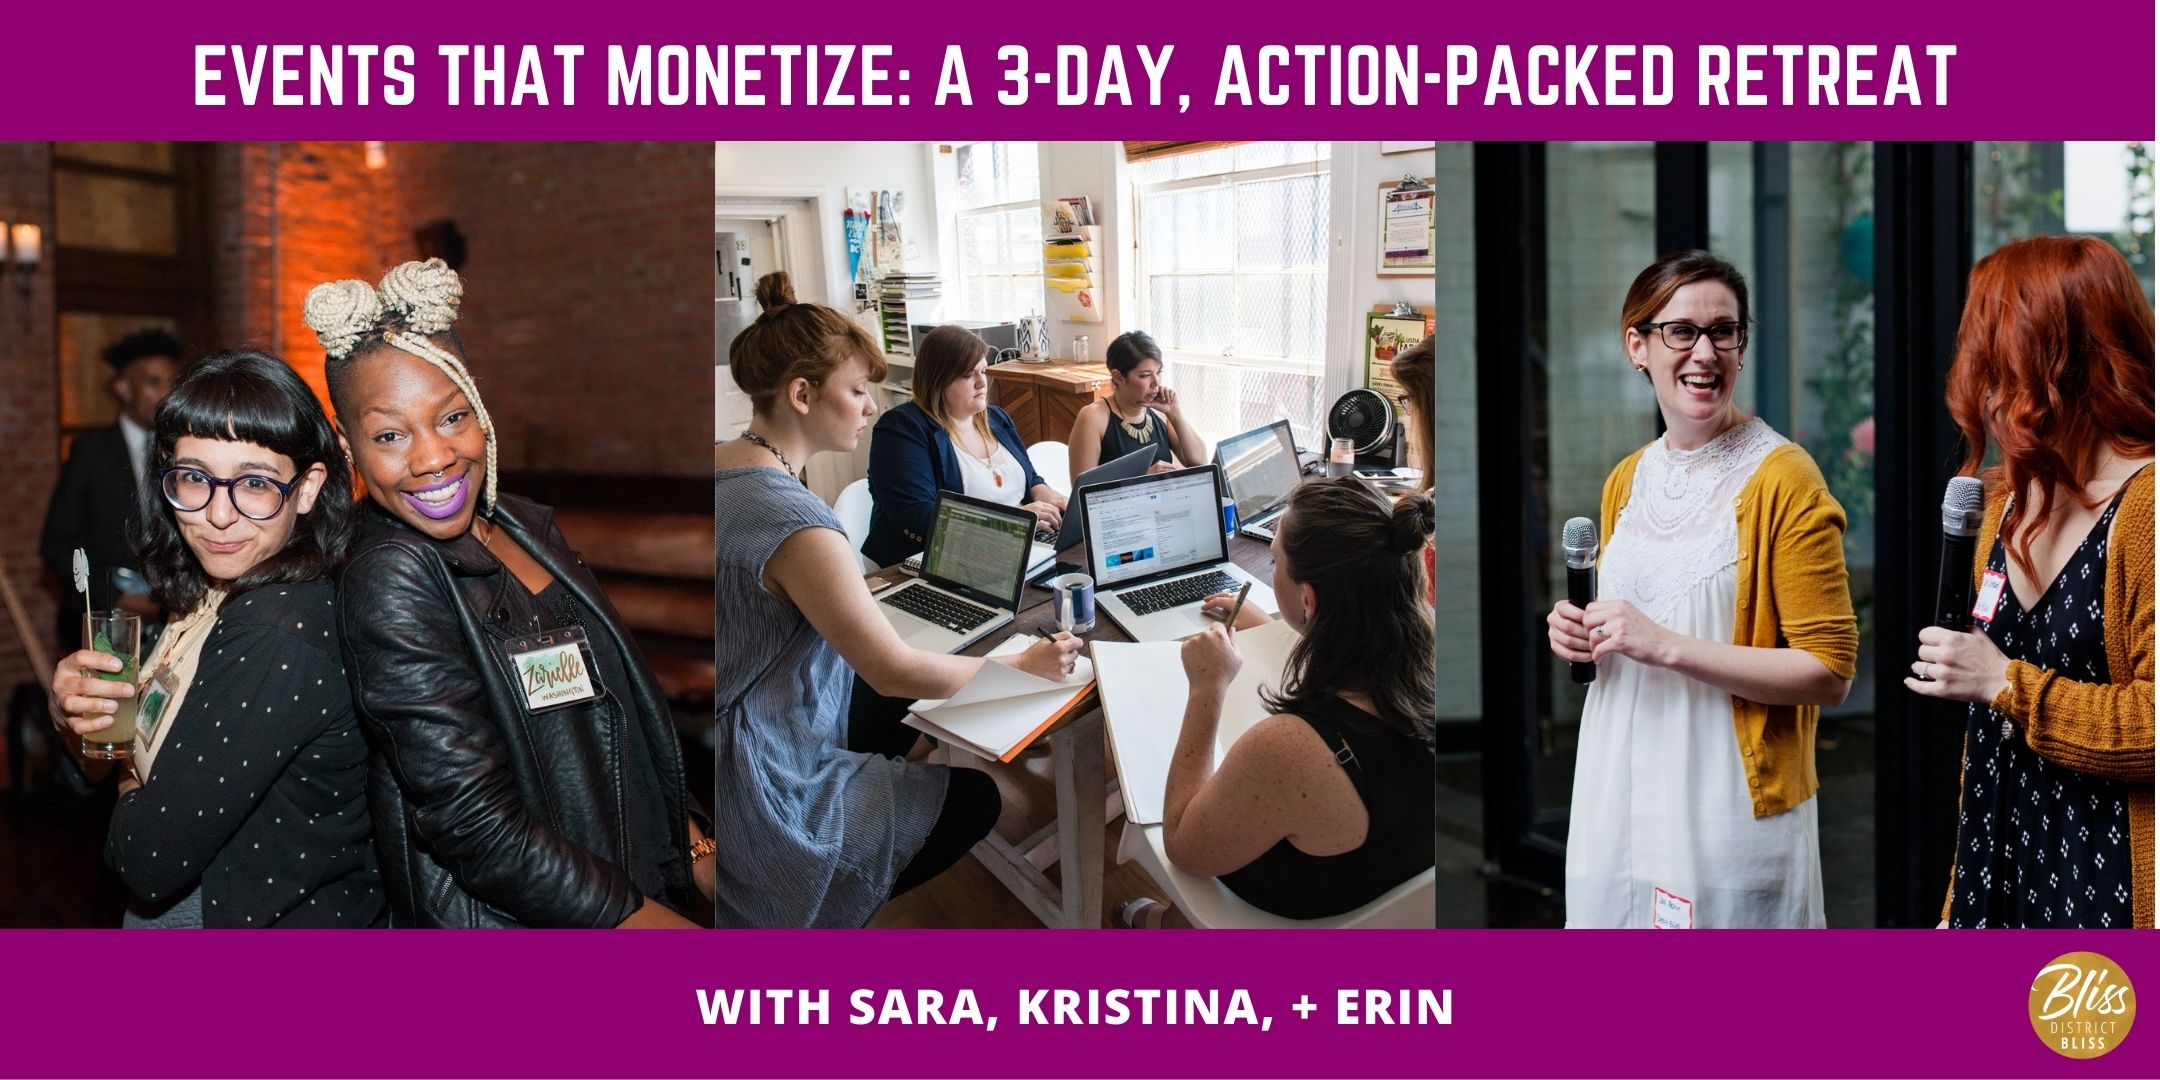 Events That Monetize | Action-Packed Retreat for Online Event Hosts